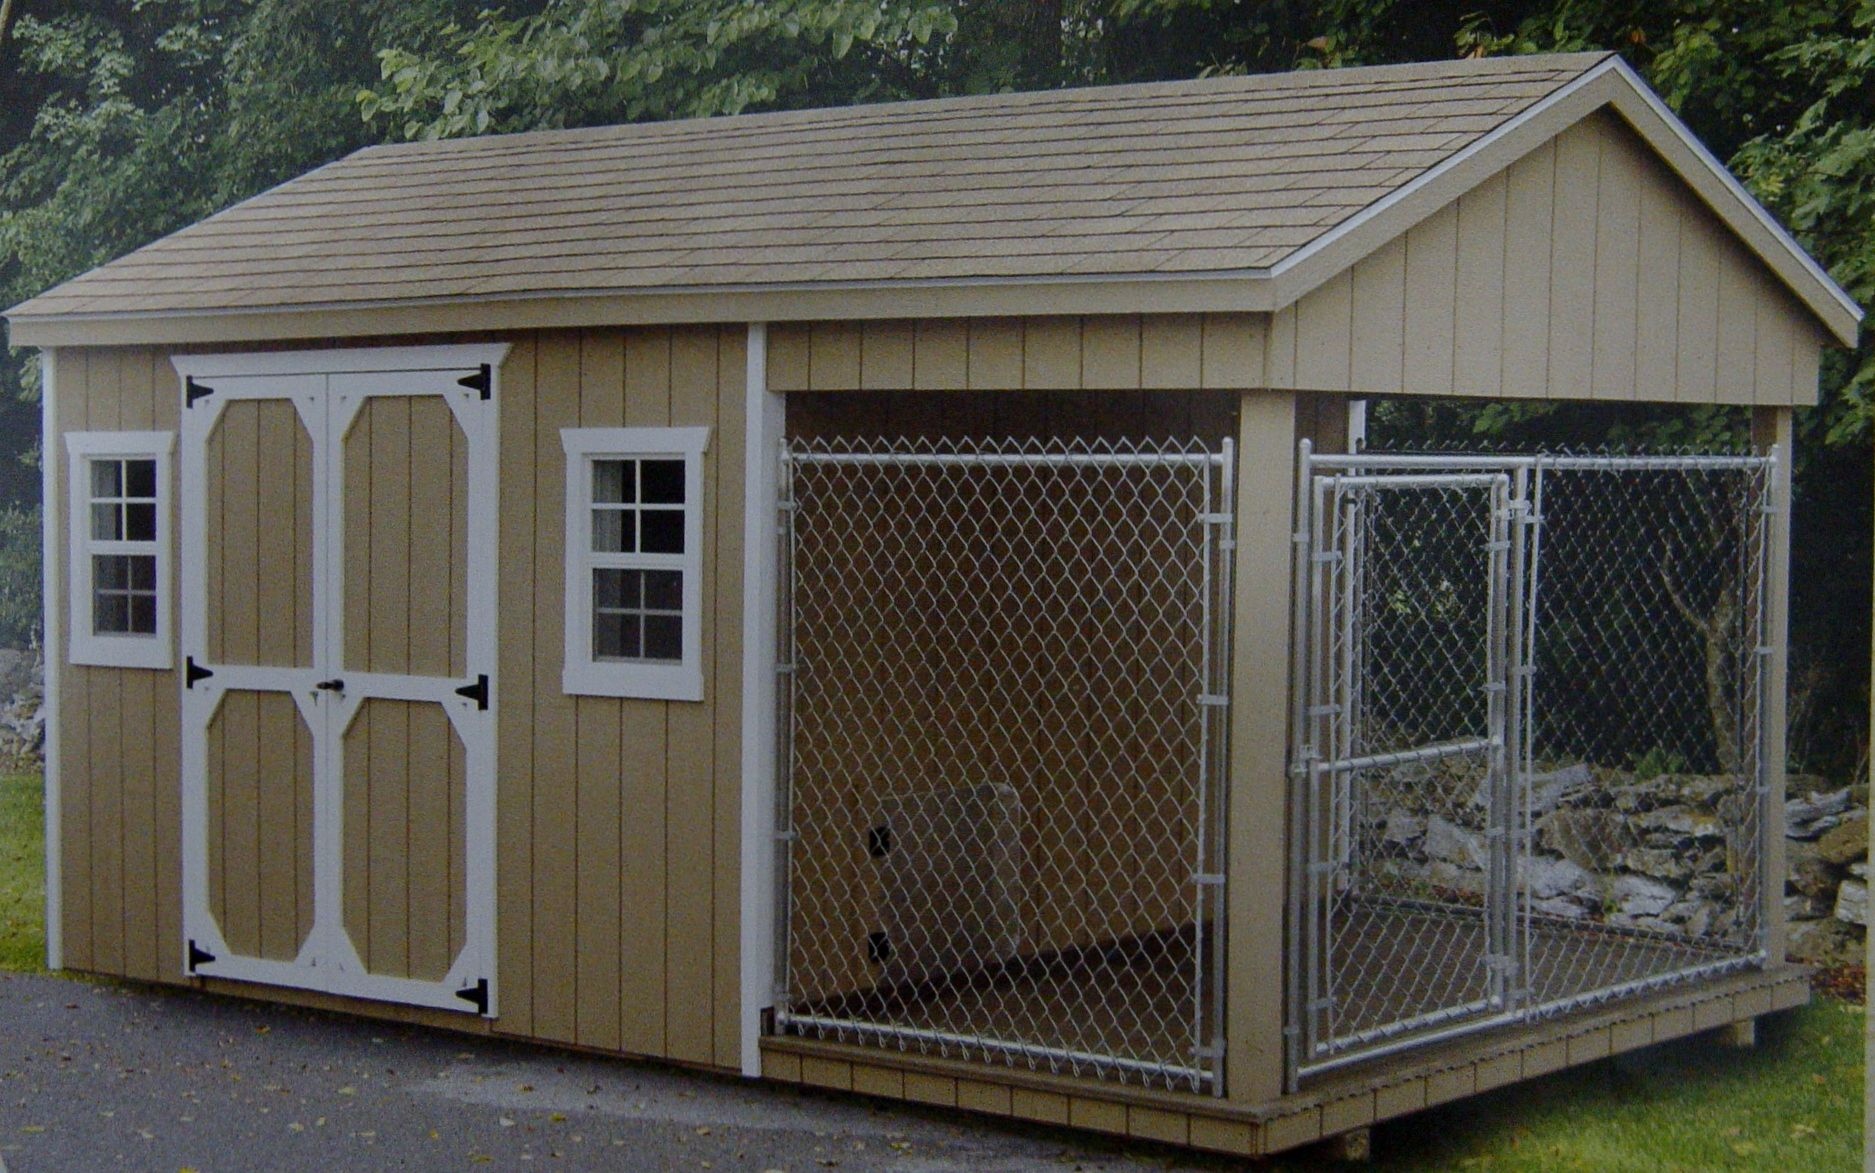 shed plans with dog kennel | Website Designed at Homestead™ Make on ideas for backyard walls, ideas for backyard hot tubs, ideas for backyard lighting, ideas for backyard walkways, ideas for plastic sheds, ideas for backyard water features, ideas for backyard trellis, ideas for backyard landscaping, ideas for backyard cabanas, ideas for backyard porches, ideas for backyard fireplaces, ideas for backyard fencing, ideas for painting sheds, ideas for backyard gardens, ideas for backyard bridges, ideas for backyard floors, ideas for backyard stairs, ideas for backyard patios, ideas for small sheds, ideas for backyard trees,